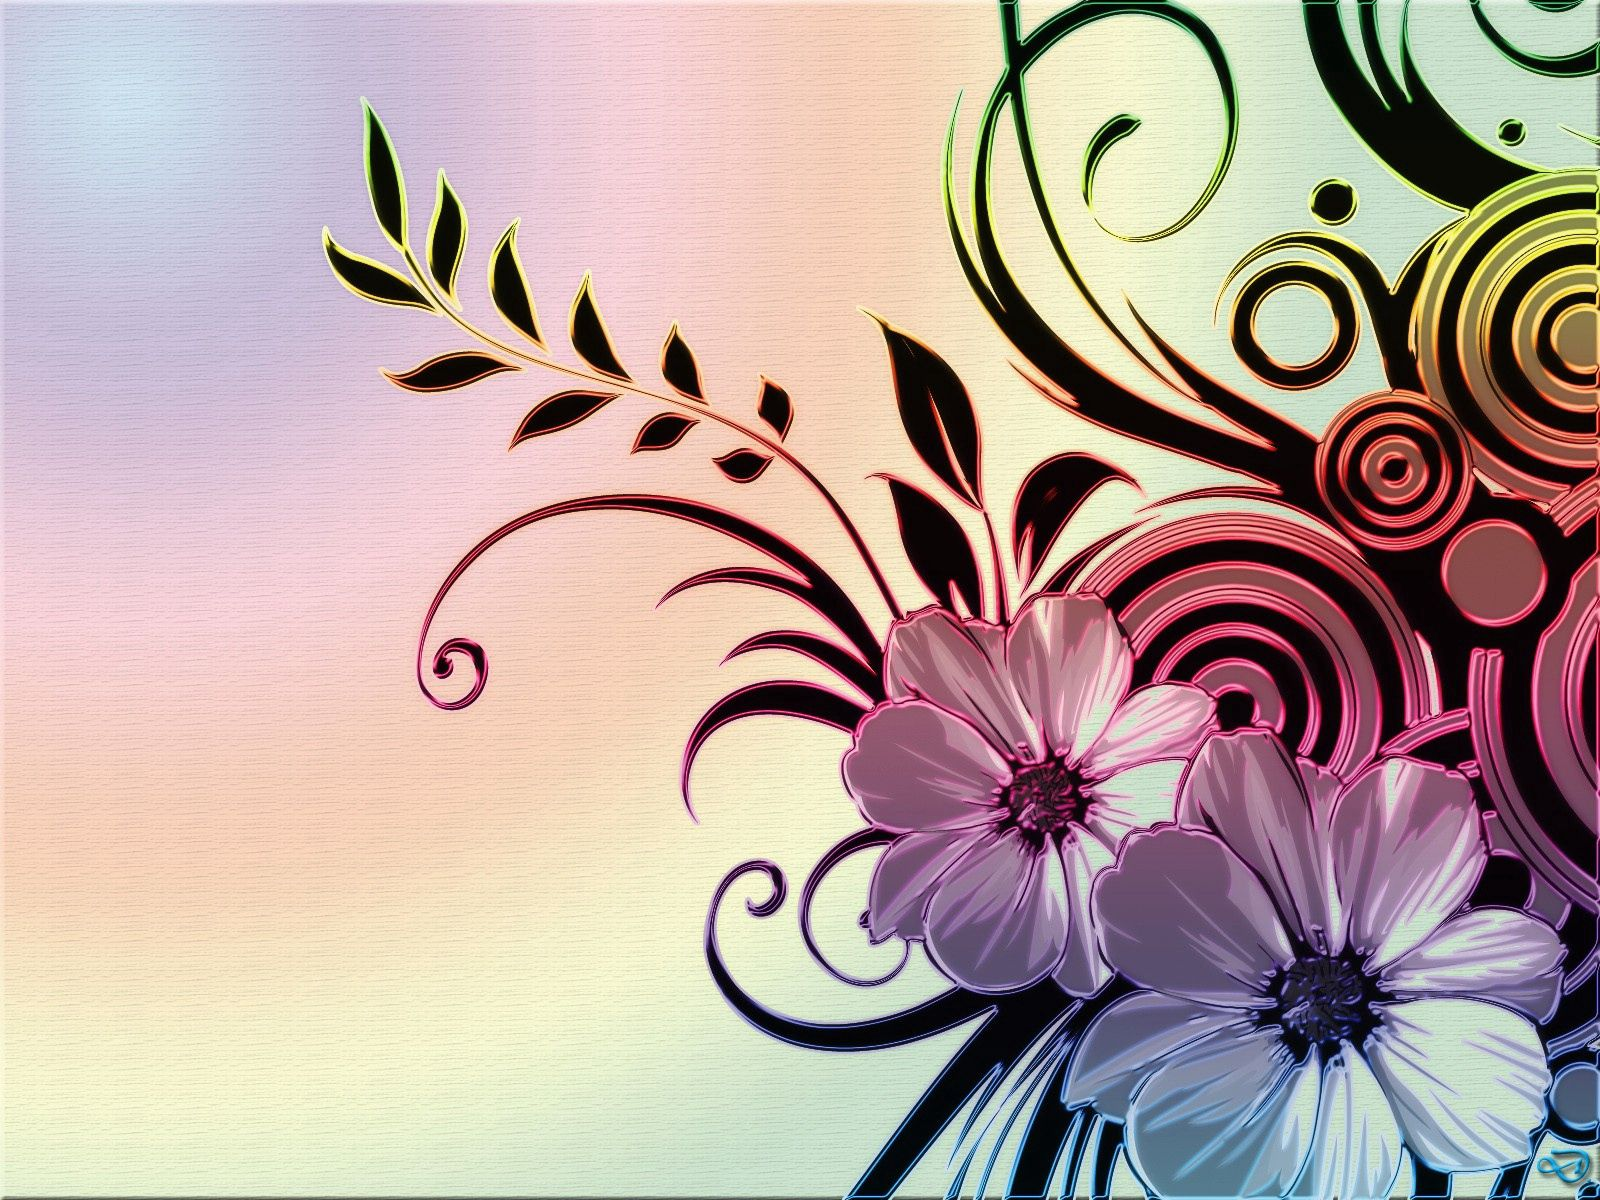 156930 download wallpaper Abstract, Picture, Drawing, Wavy, Light Coloured, Light, Flowers, Patterns screensavers and pictures for free